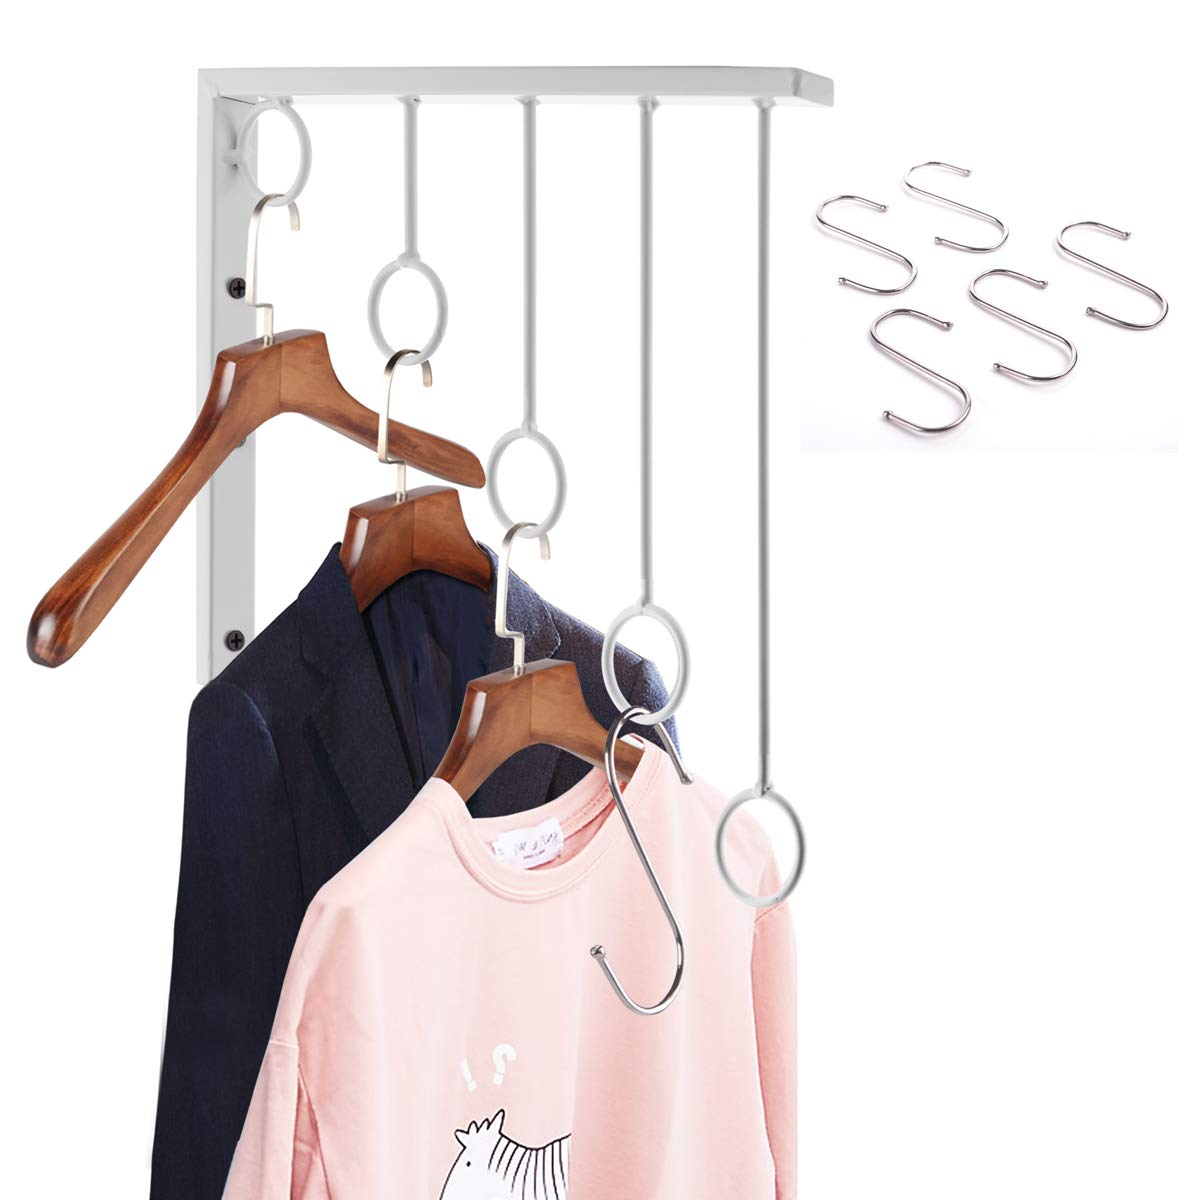 OKOMATCH Clothes Hanger Wall Mounted Clothing Organizer/Drying Rack/Garment Dispaly + 5Pcs Stainless Steel Hooks,Indoor & Outdoor Use,Heavy Duty (Grey)